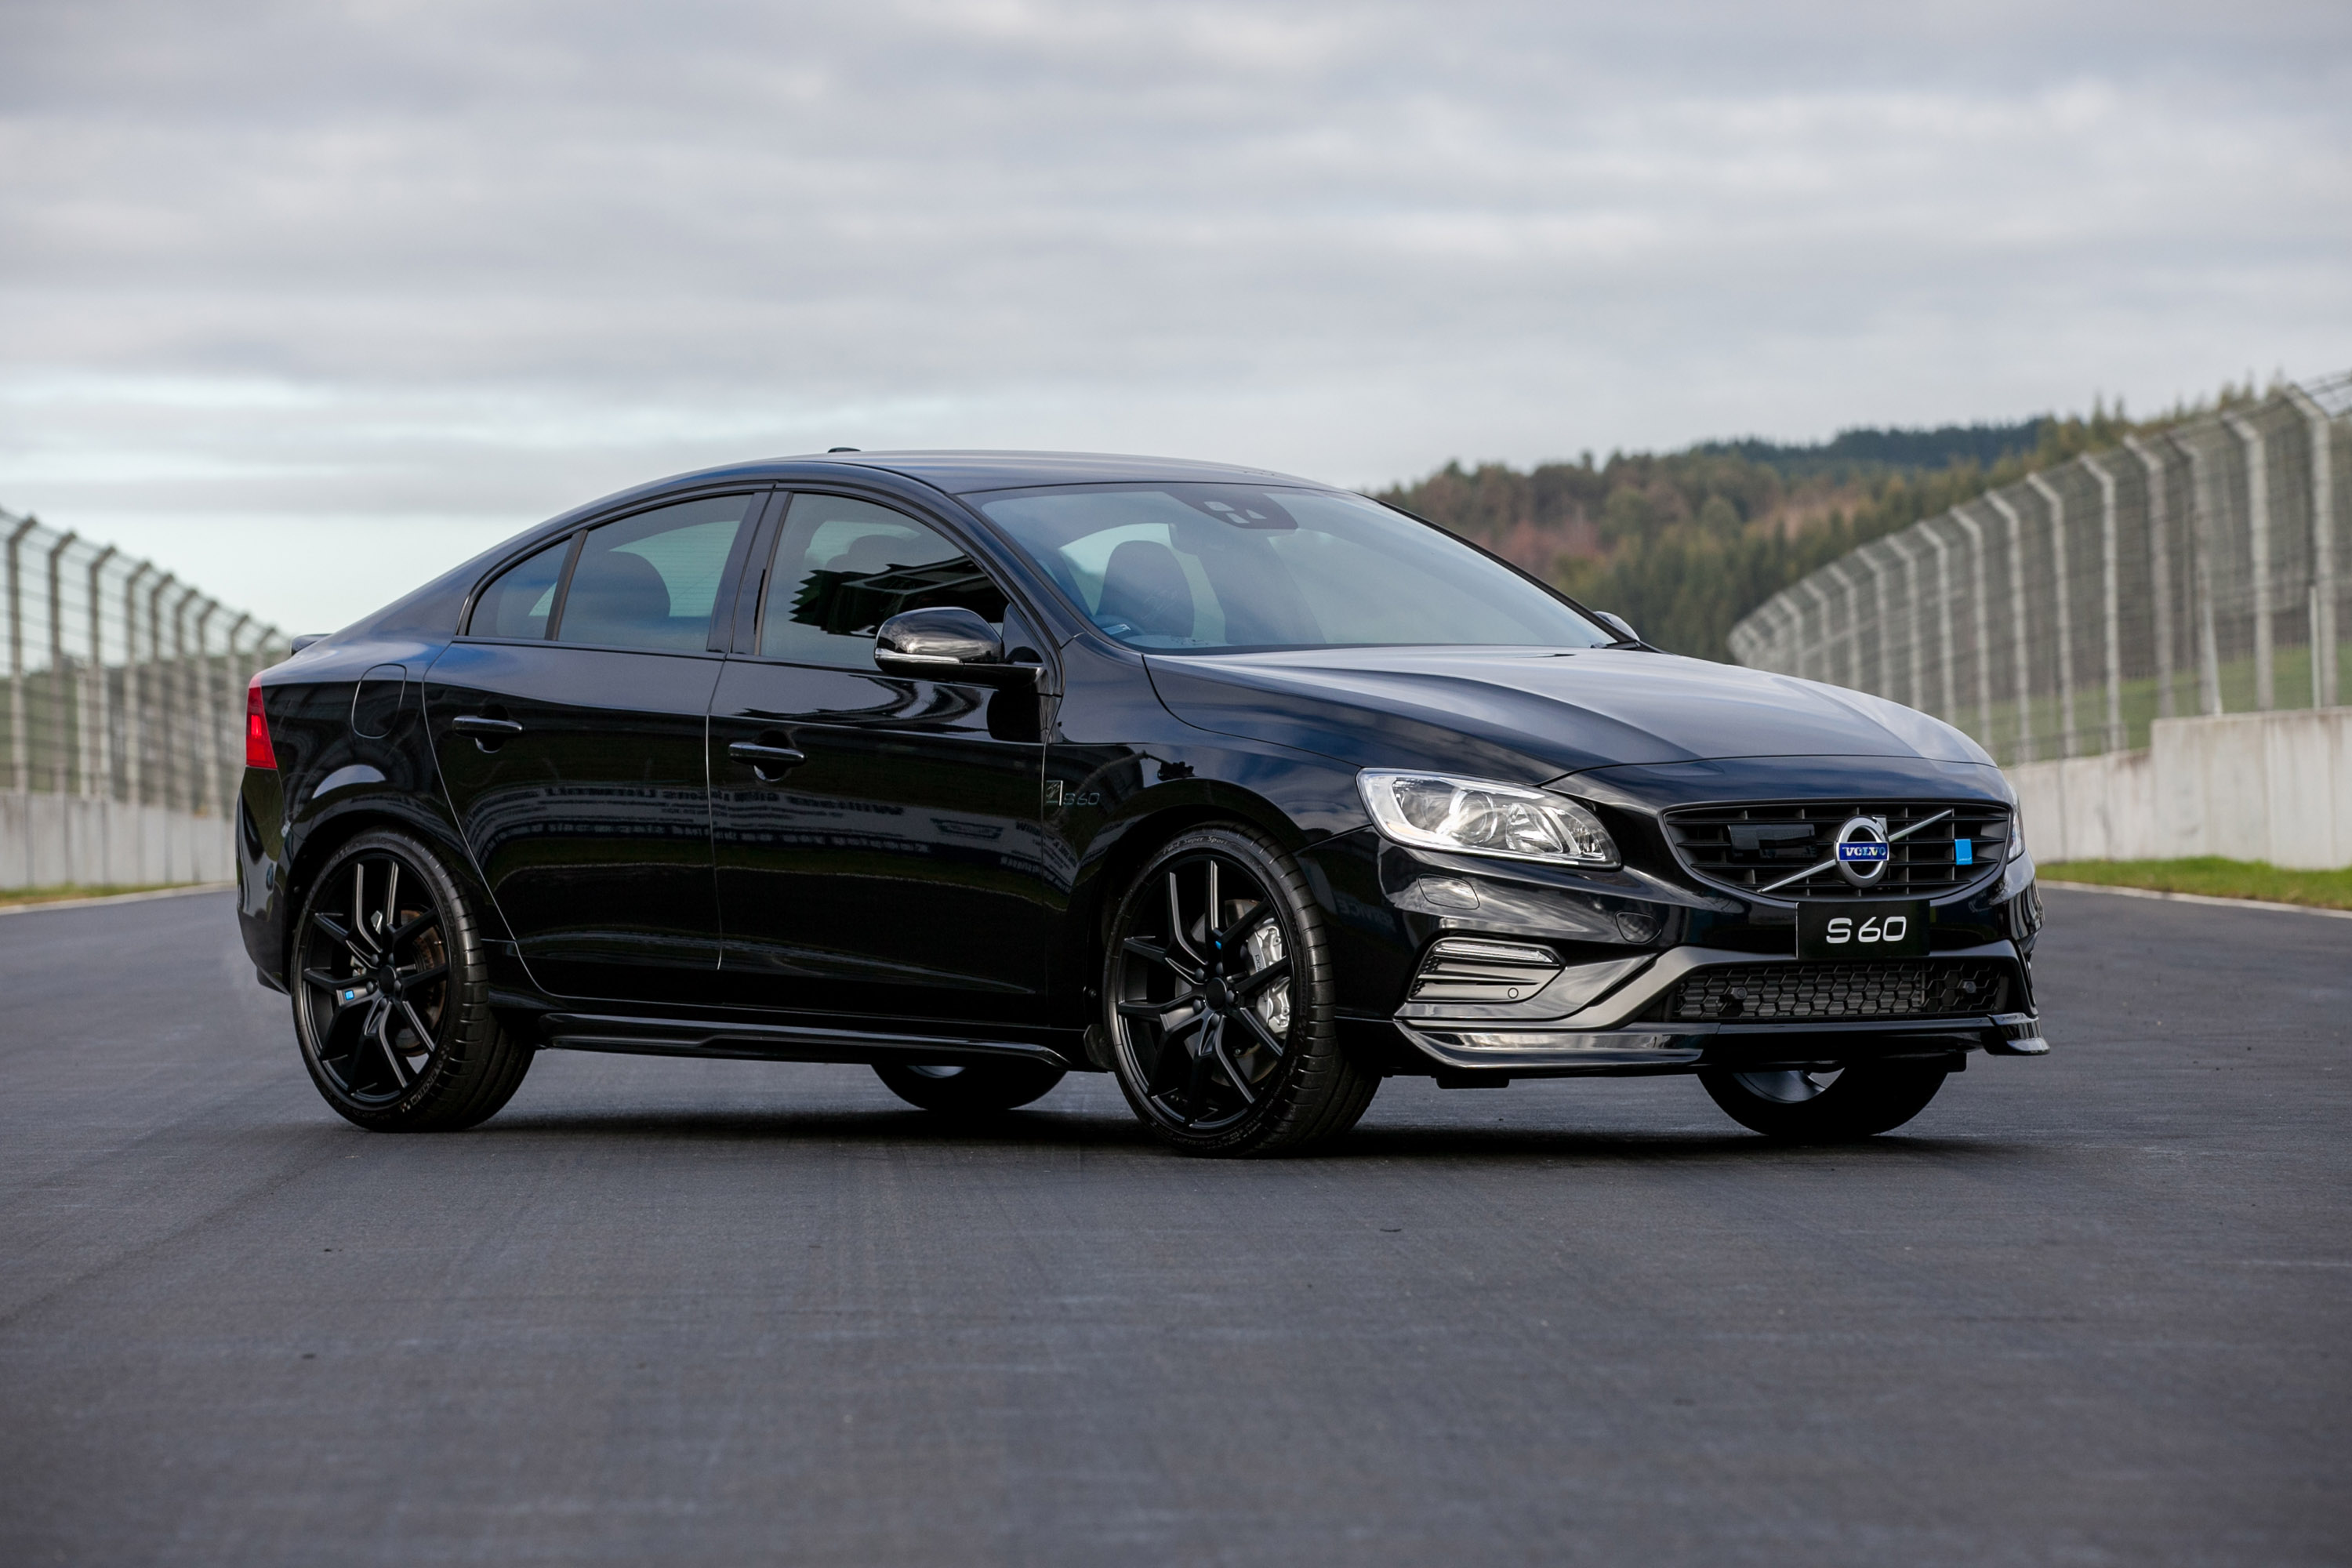 volvo national grand four for small displacement buick company ditching modern with turbocharger litre s supercharger inline polestar new and both adopts day a wp older the